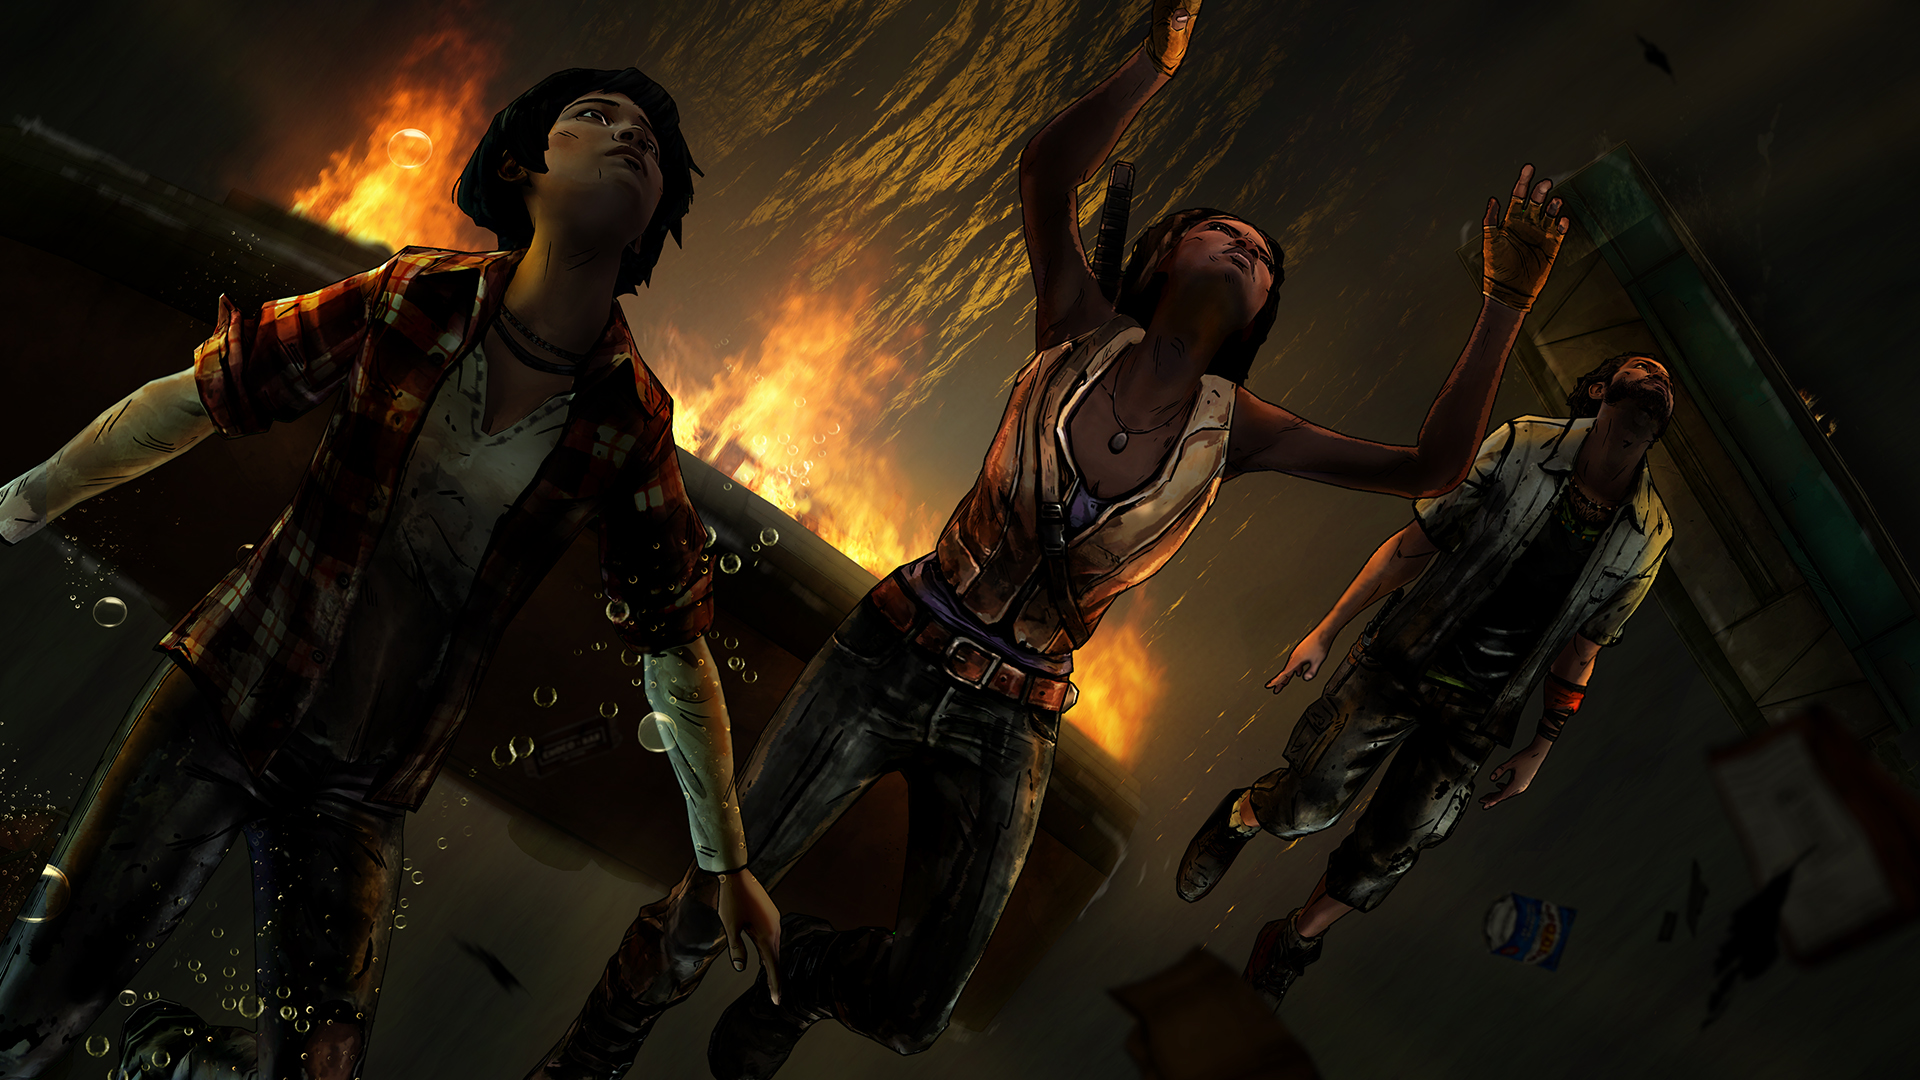 WDM 102 Underwater 1920x1080 - New Screens And Trailer From Telltale's Michonne Series